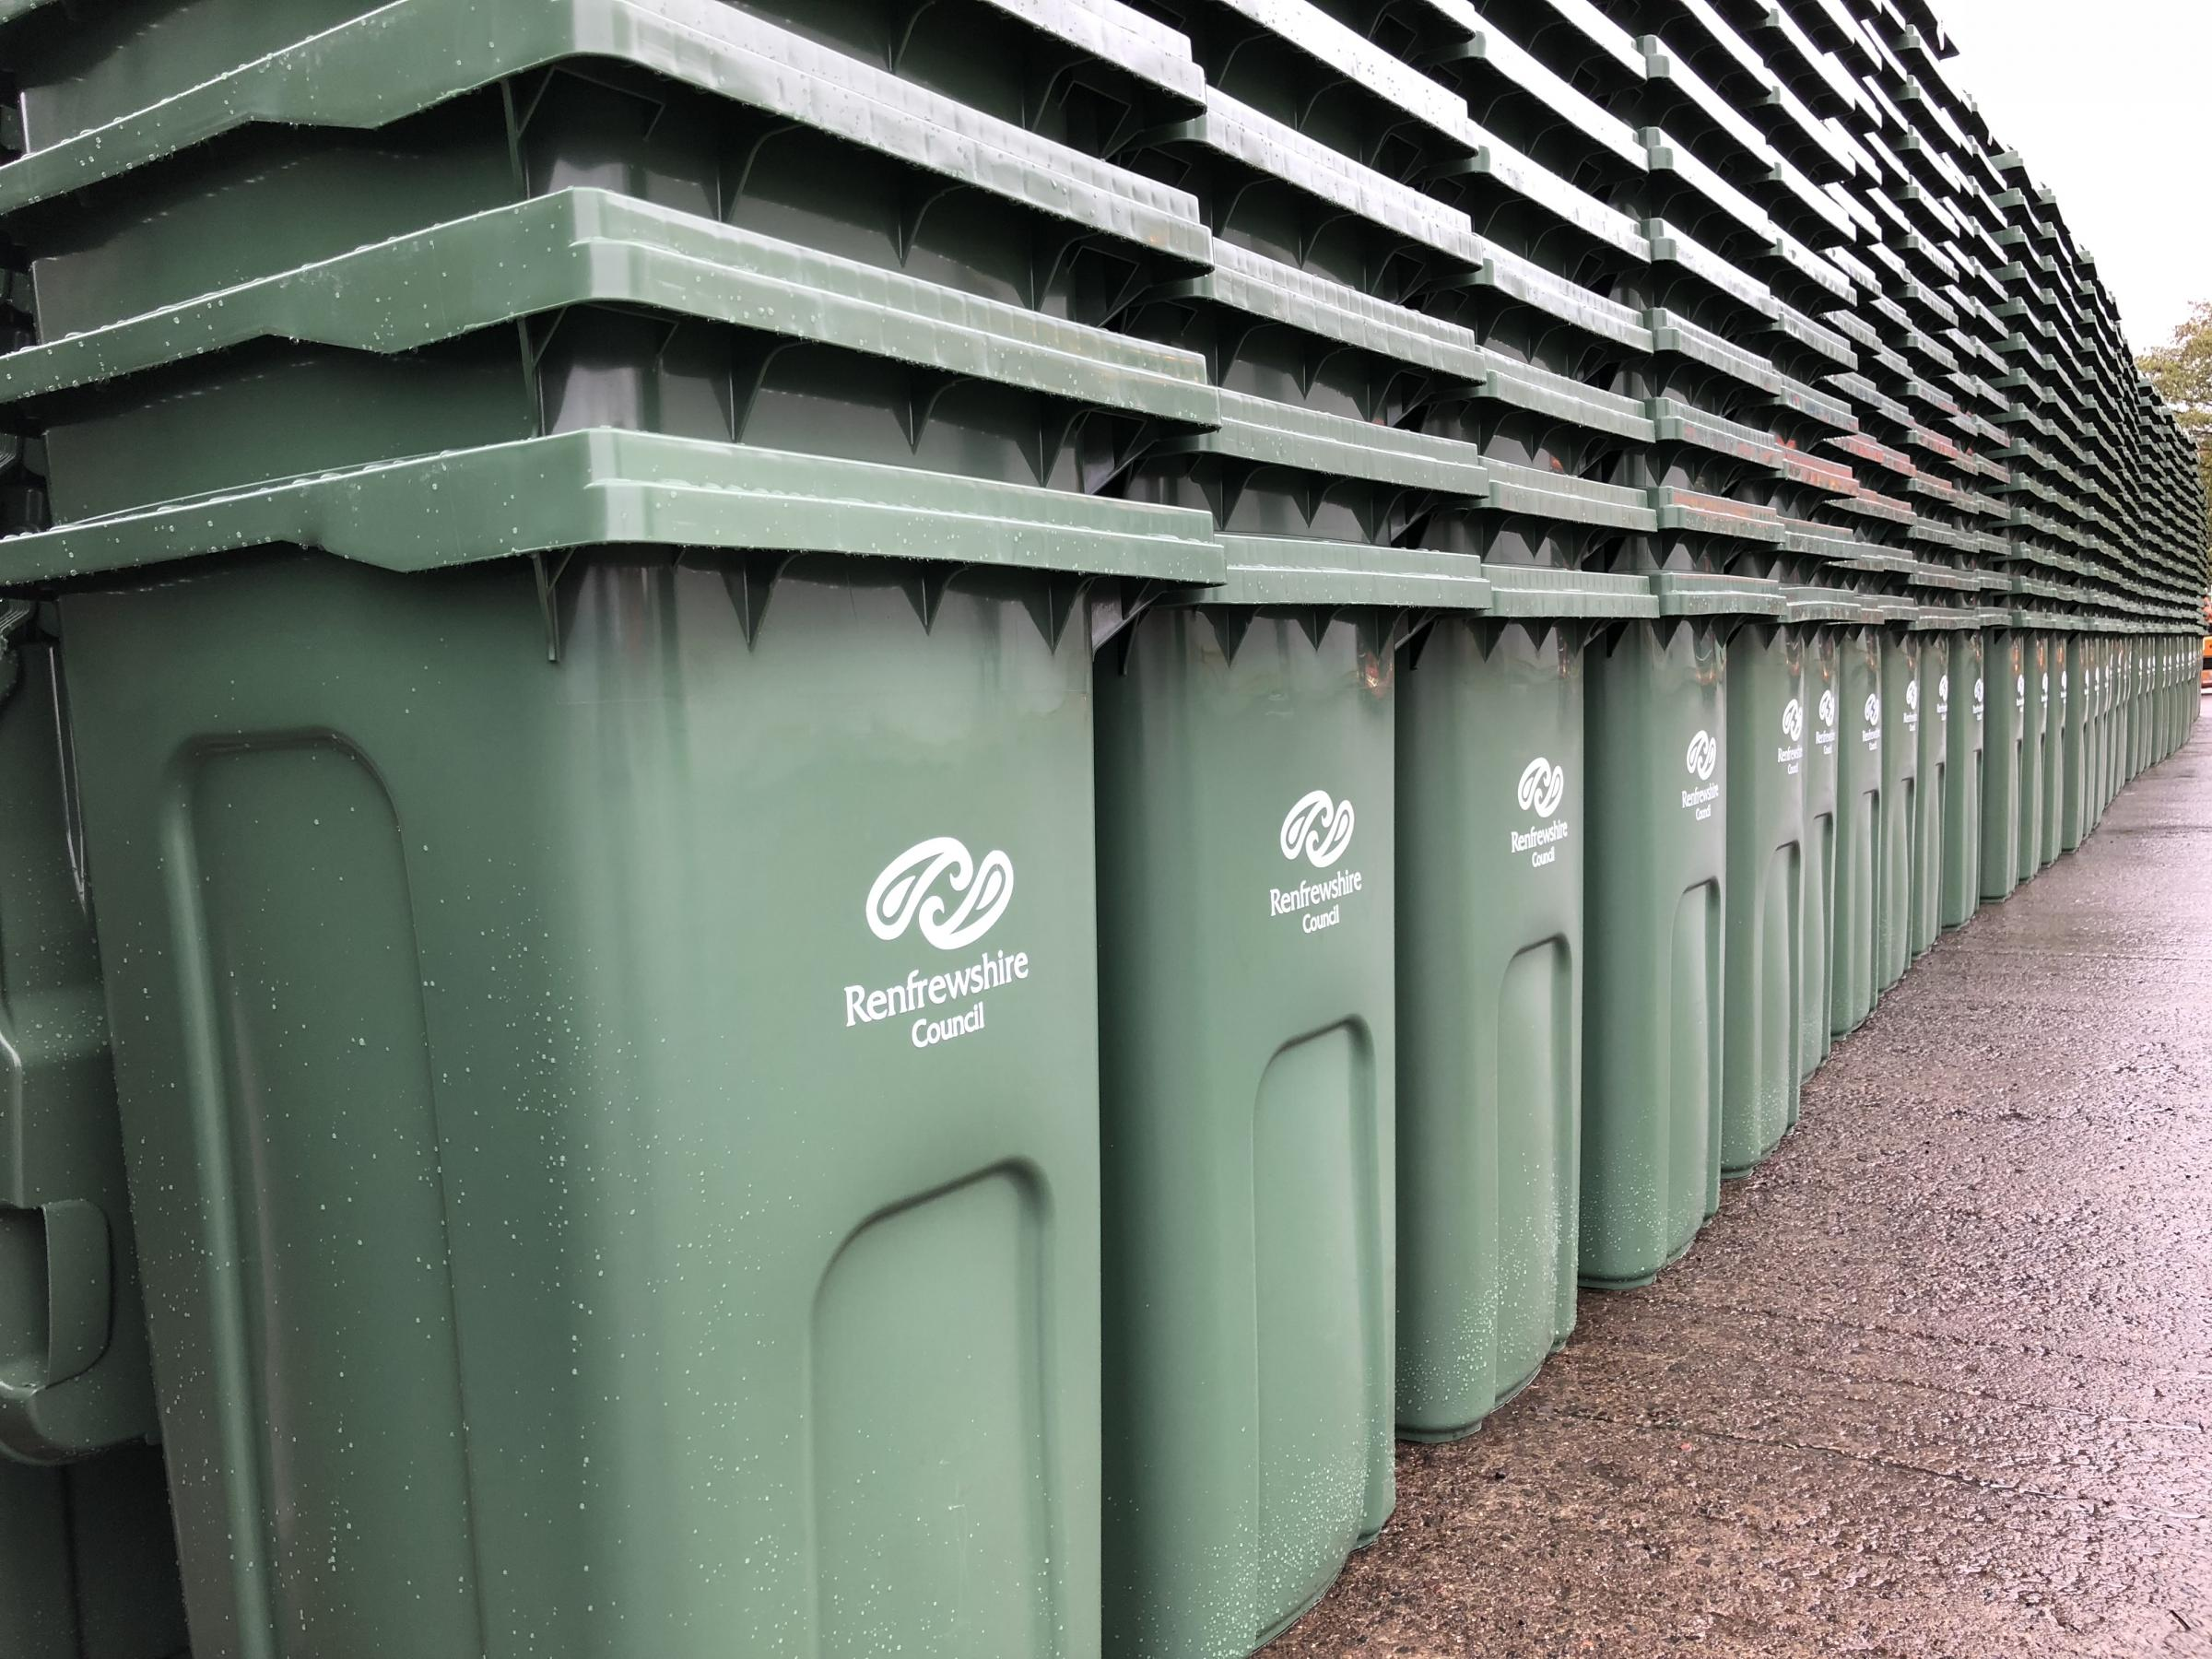 Council offers online advice on new bin system